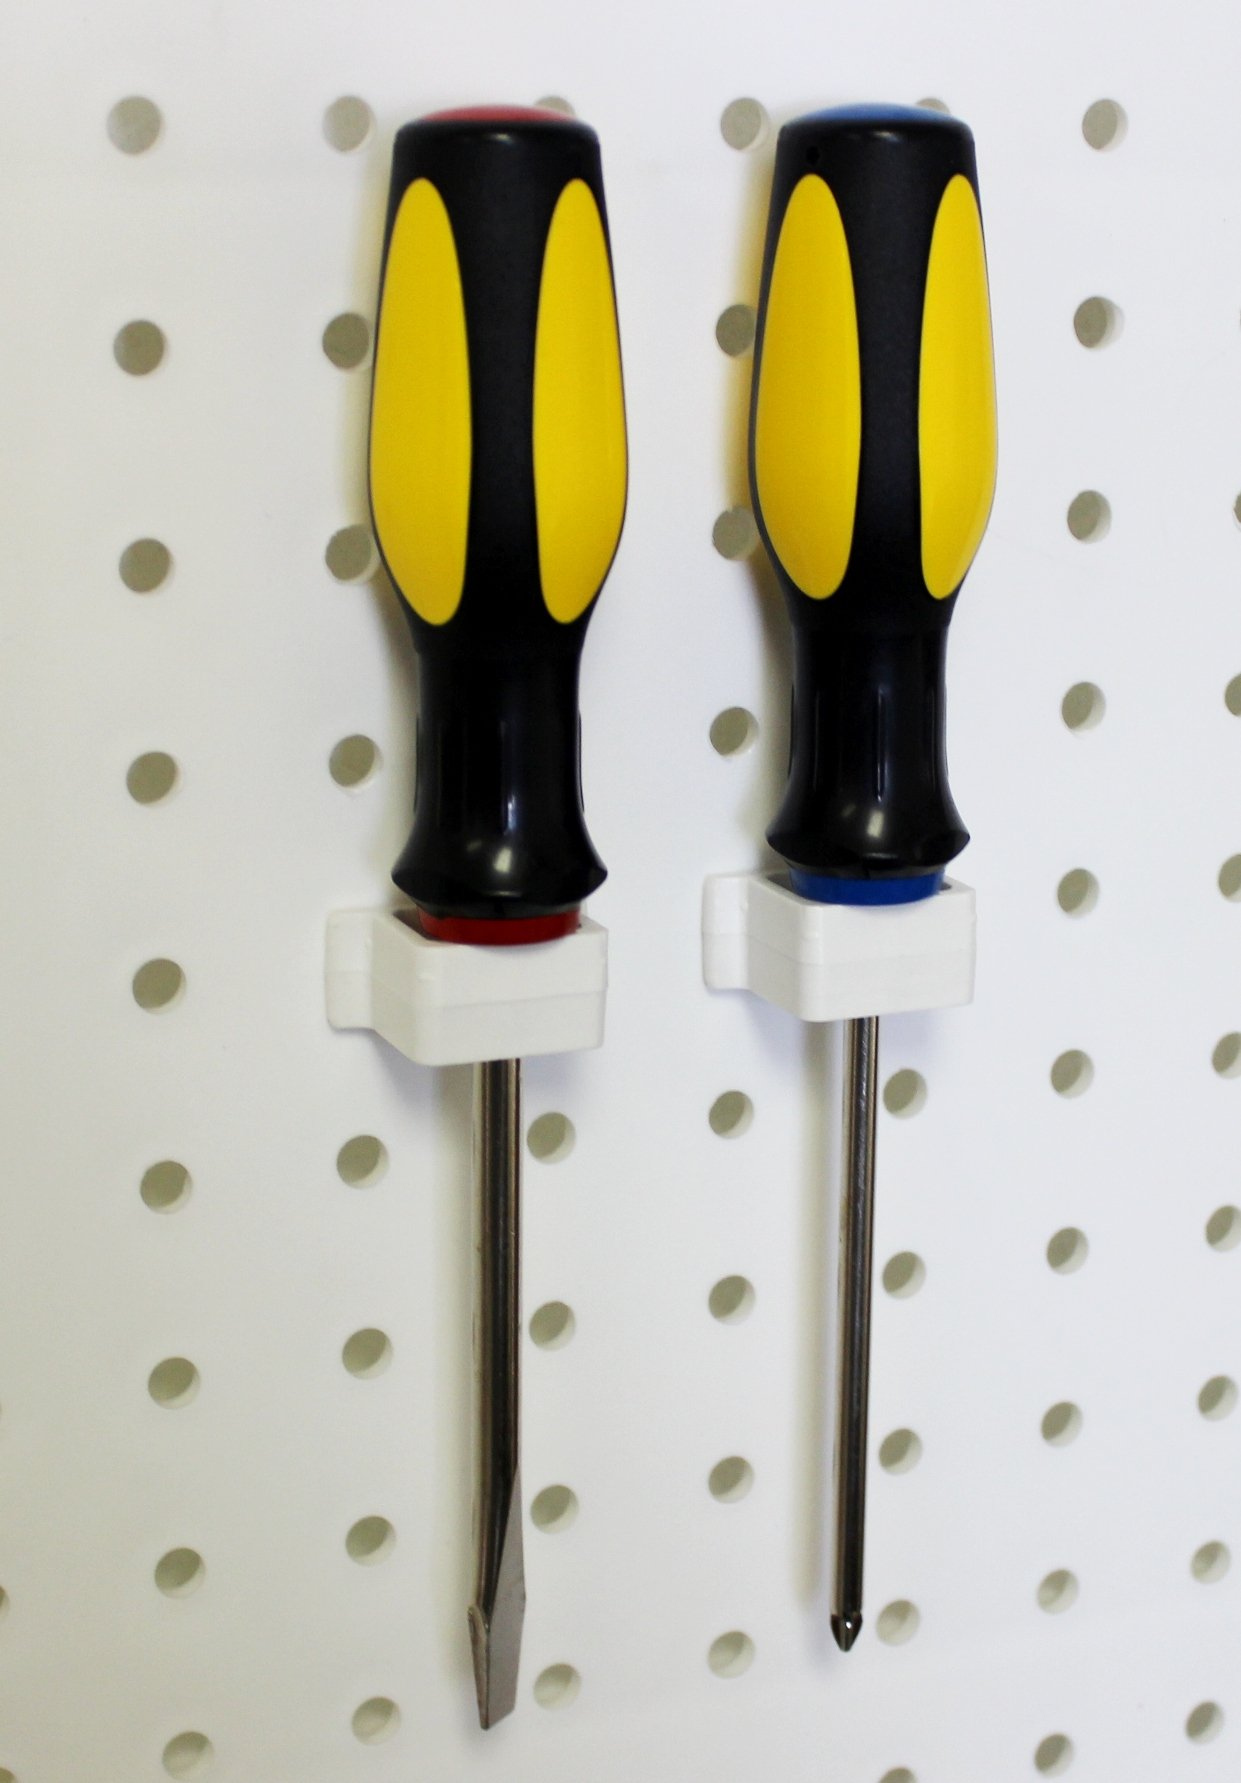 WallPeg 80 pc. Assorted White Peg Hooks - Garage Storage & Tool Organizer by WallPeg (Image #3)